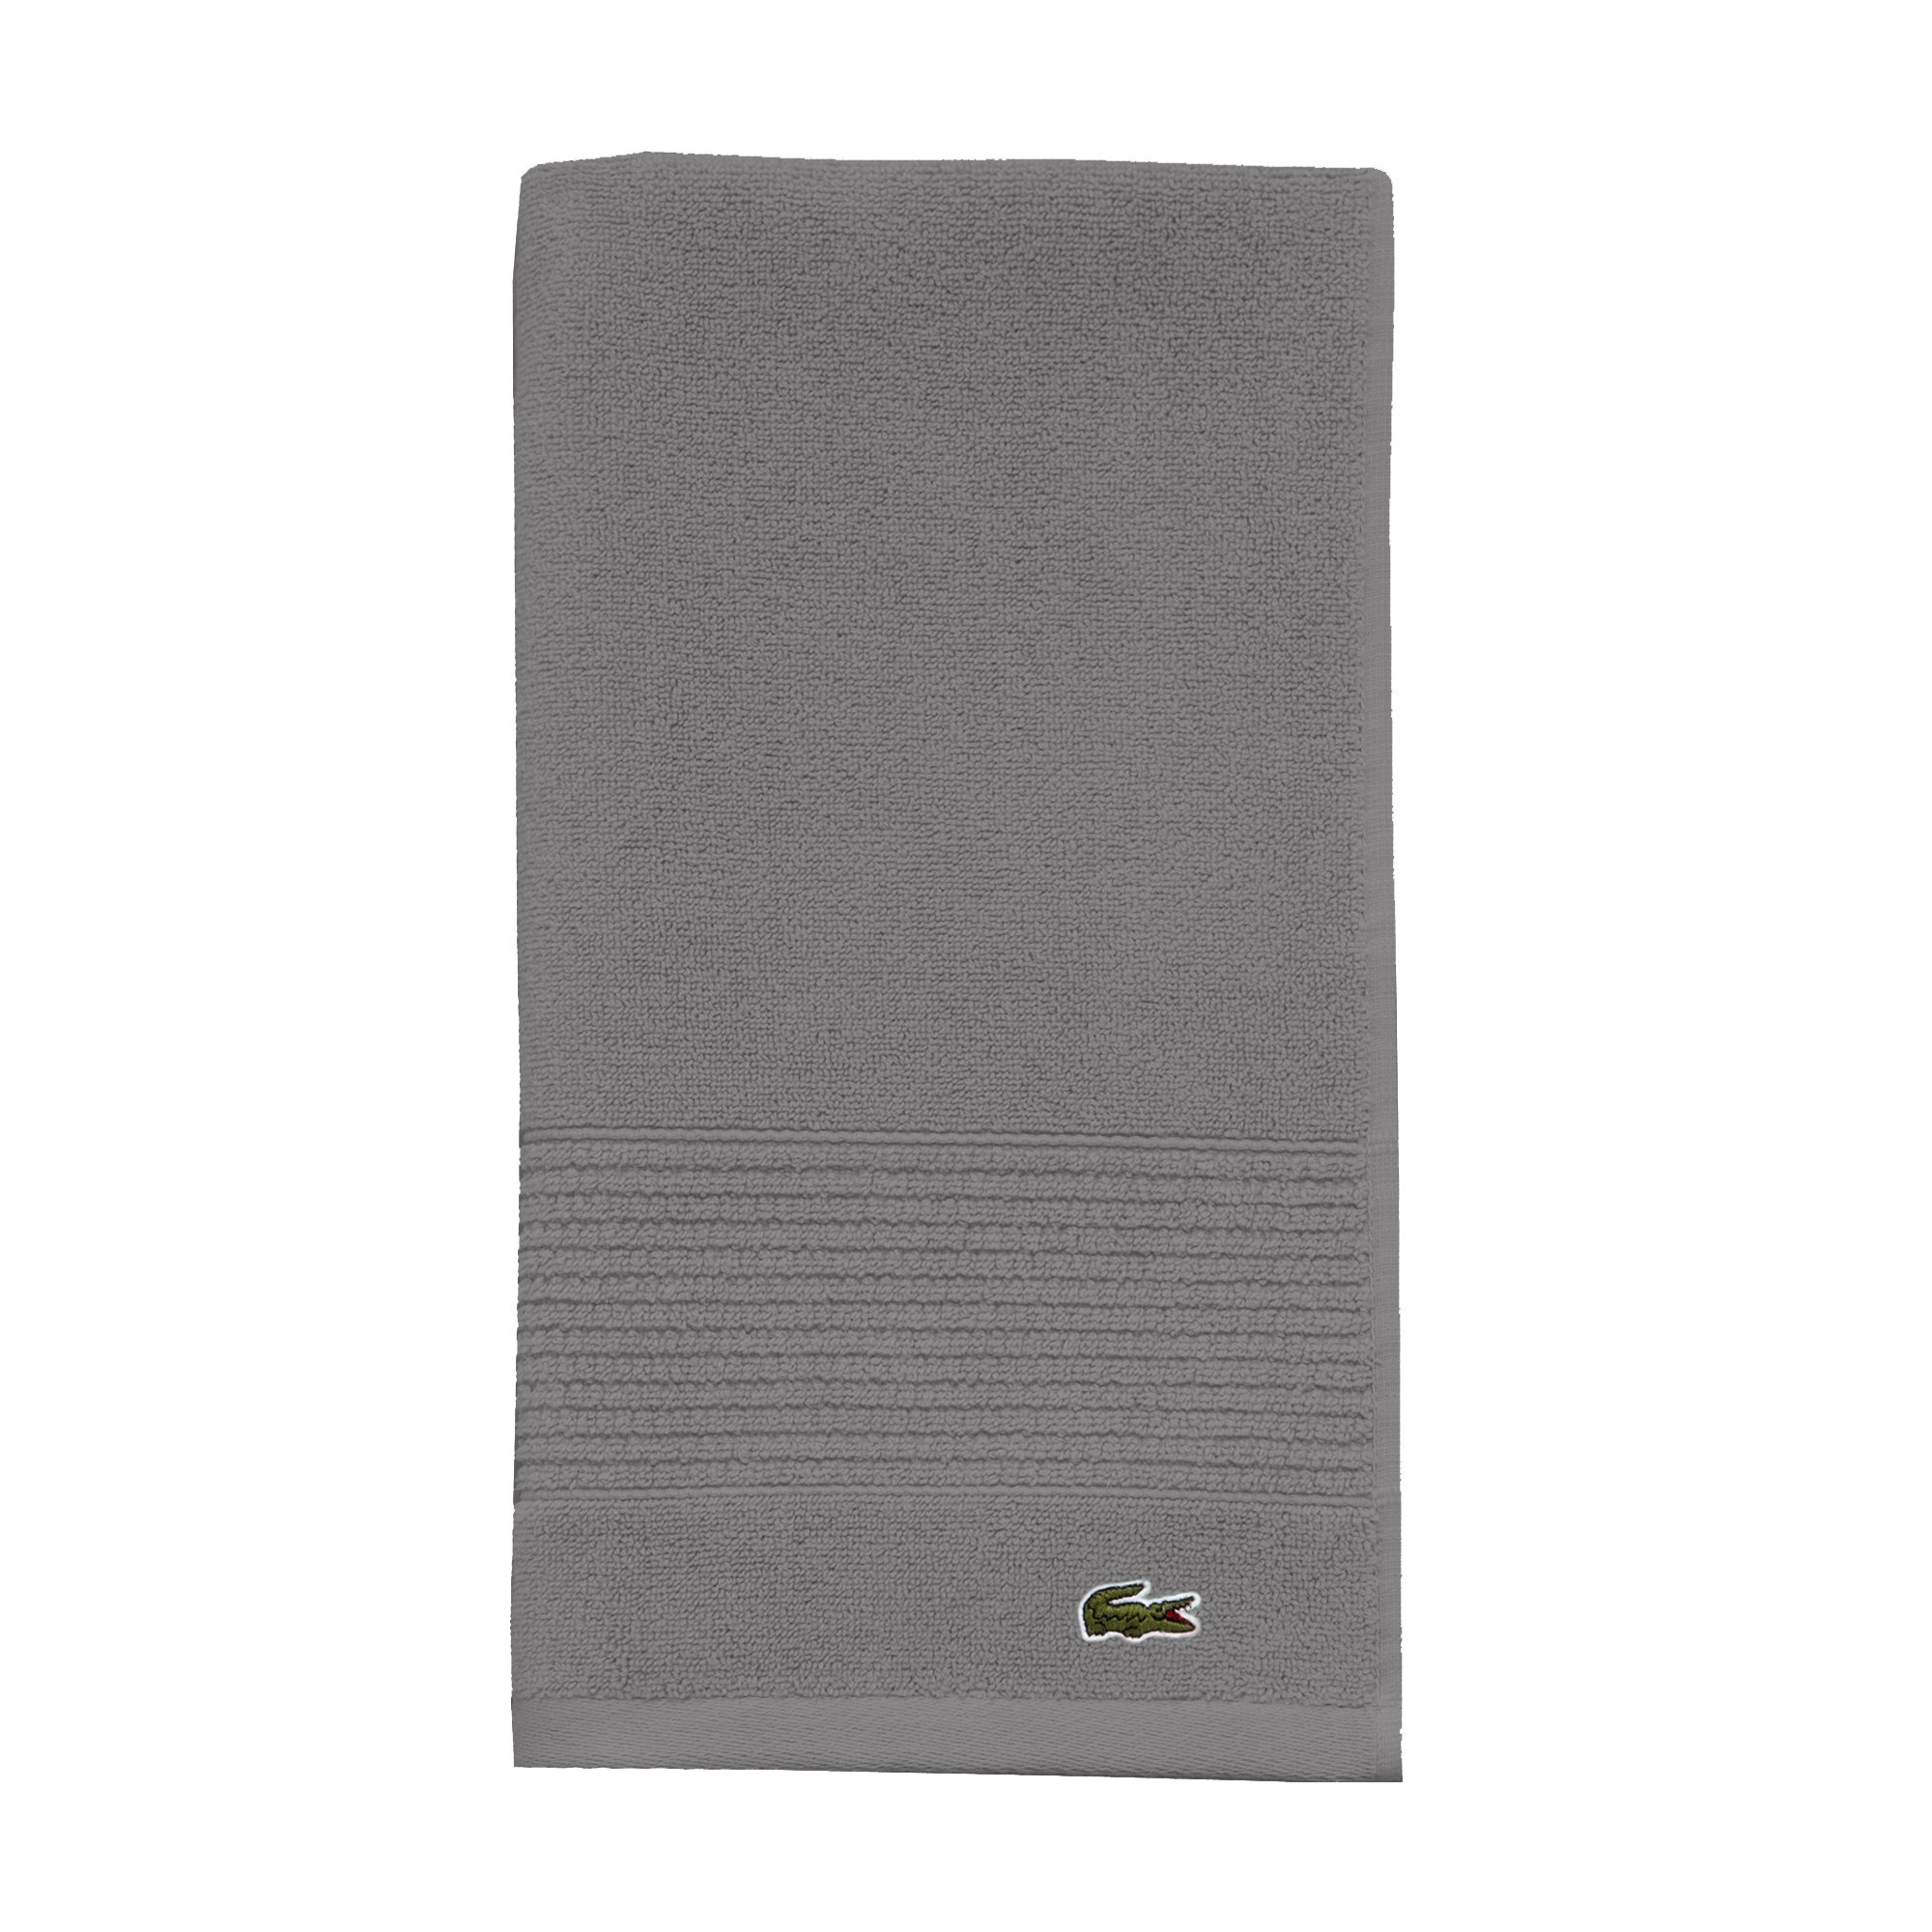 Lacoste Legend Towel, 100% Supima Cotton Loops, 650 GSM, 16''x30'' Hand, Meteorite